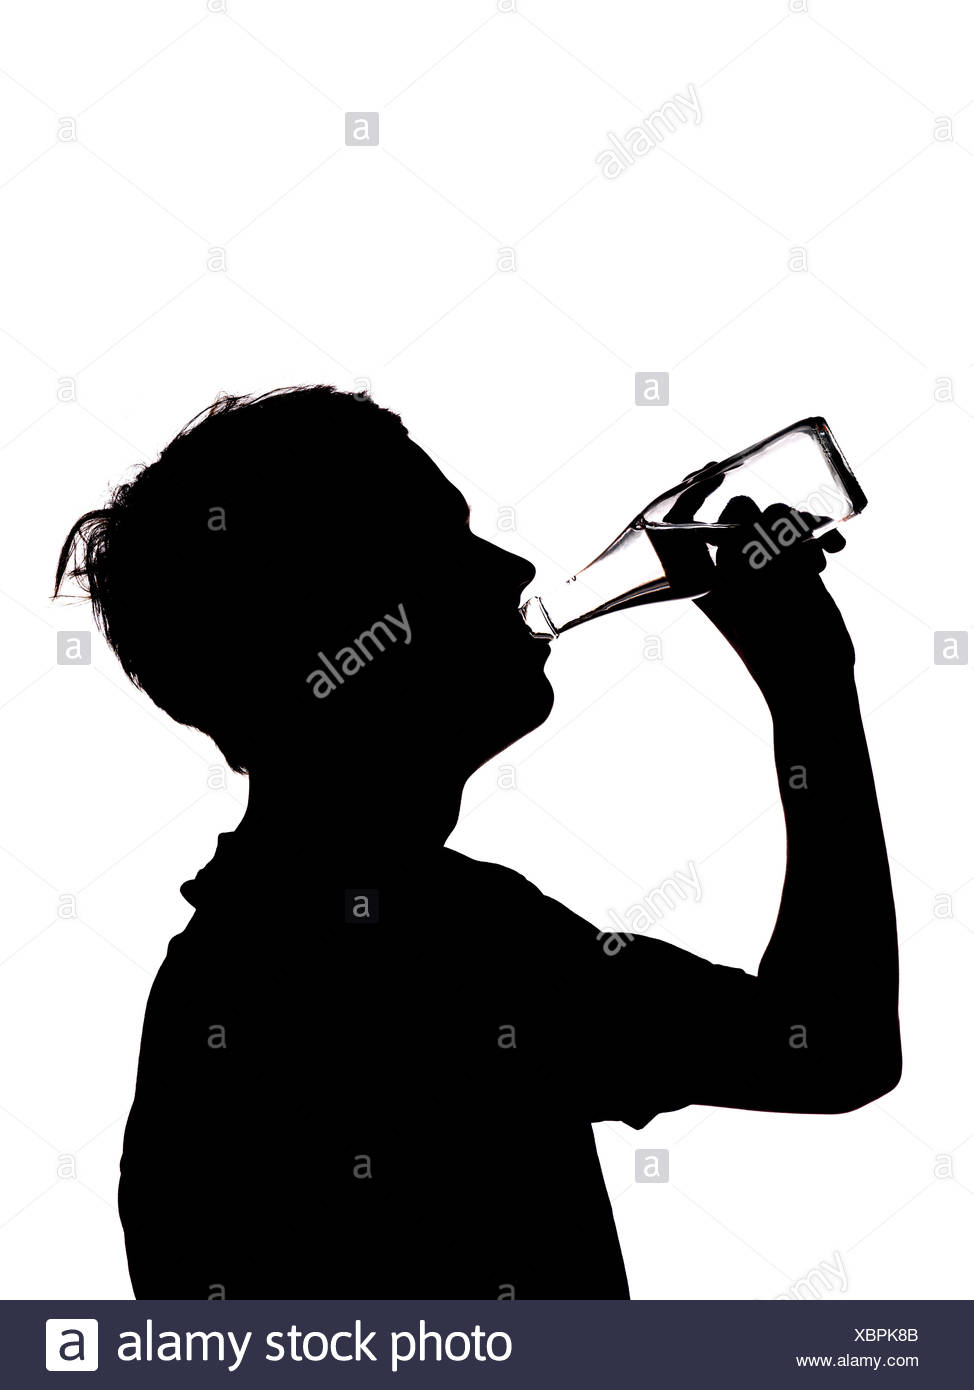 974x1390 Boy Drinking Silhouette Black And White Stock Photos Amp Images